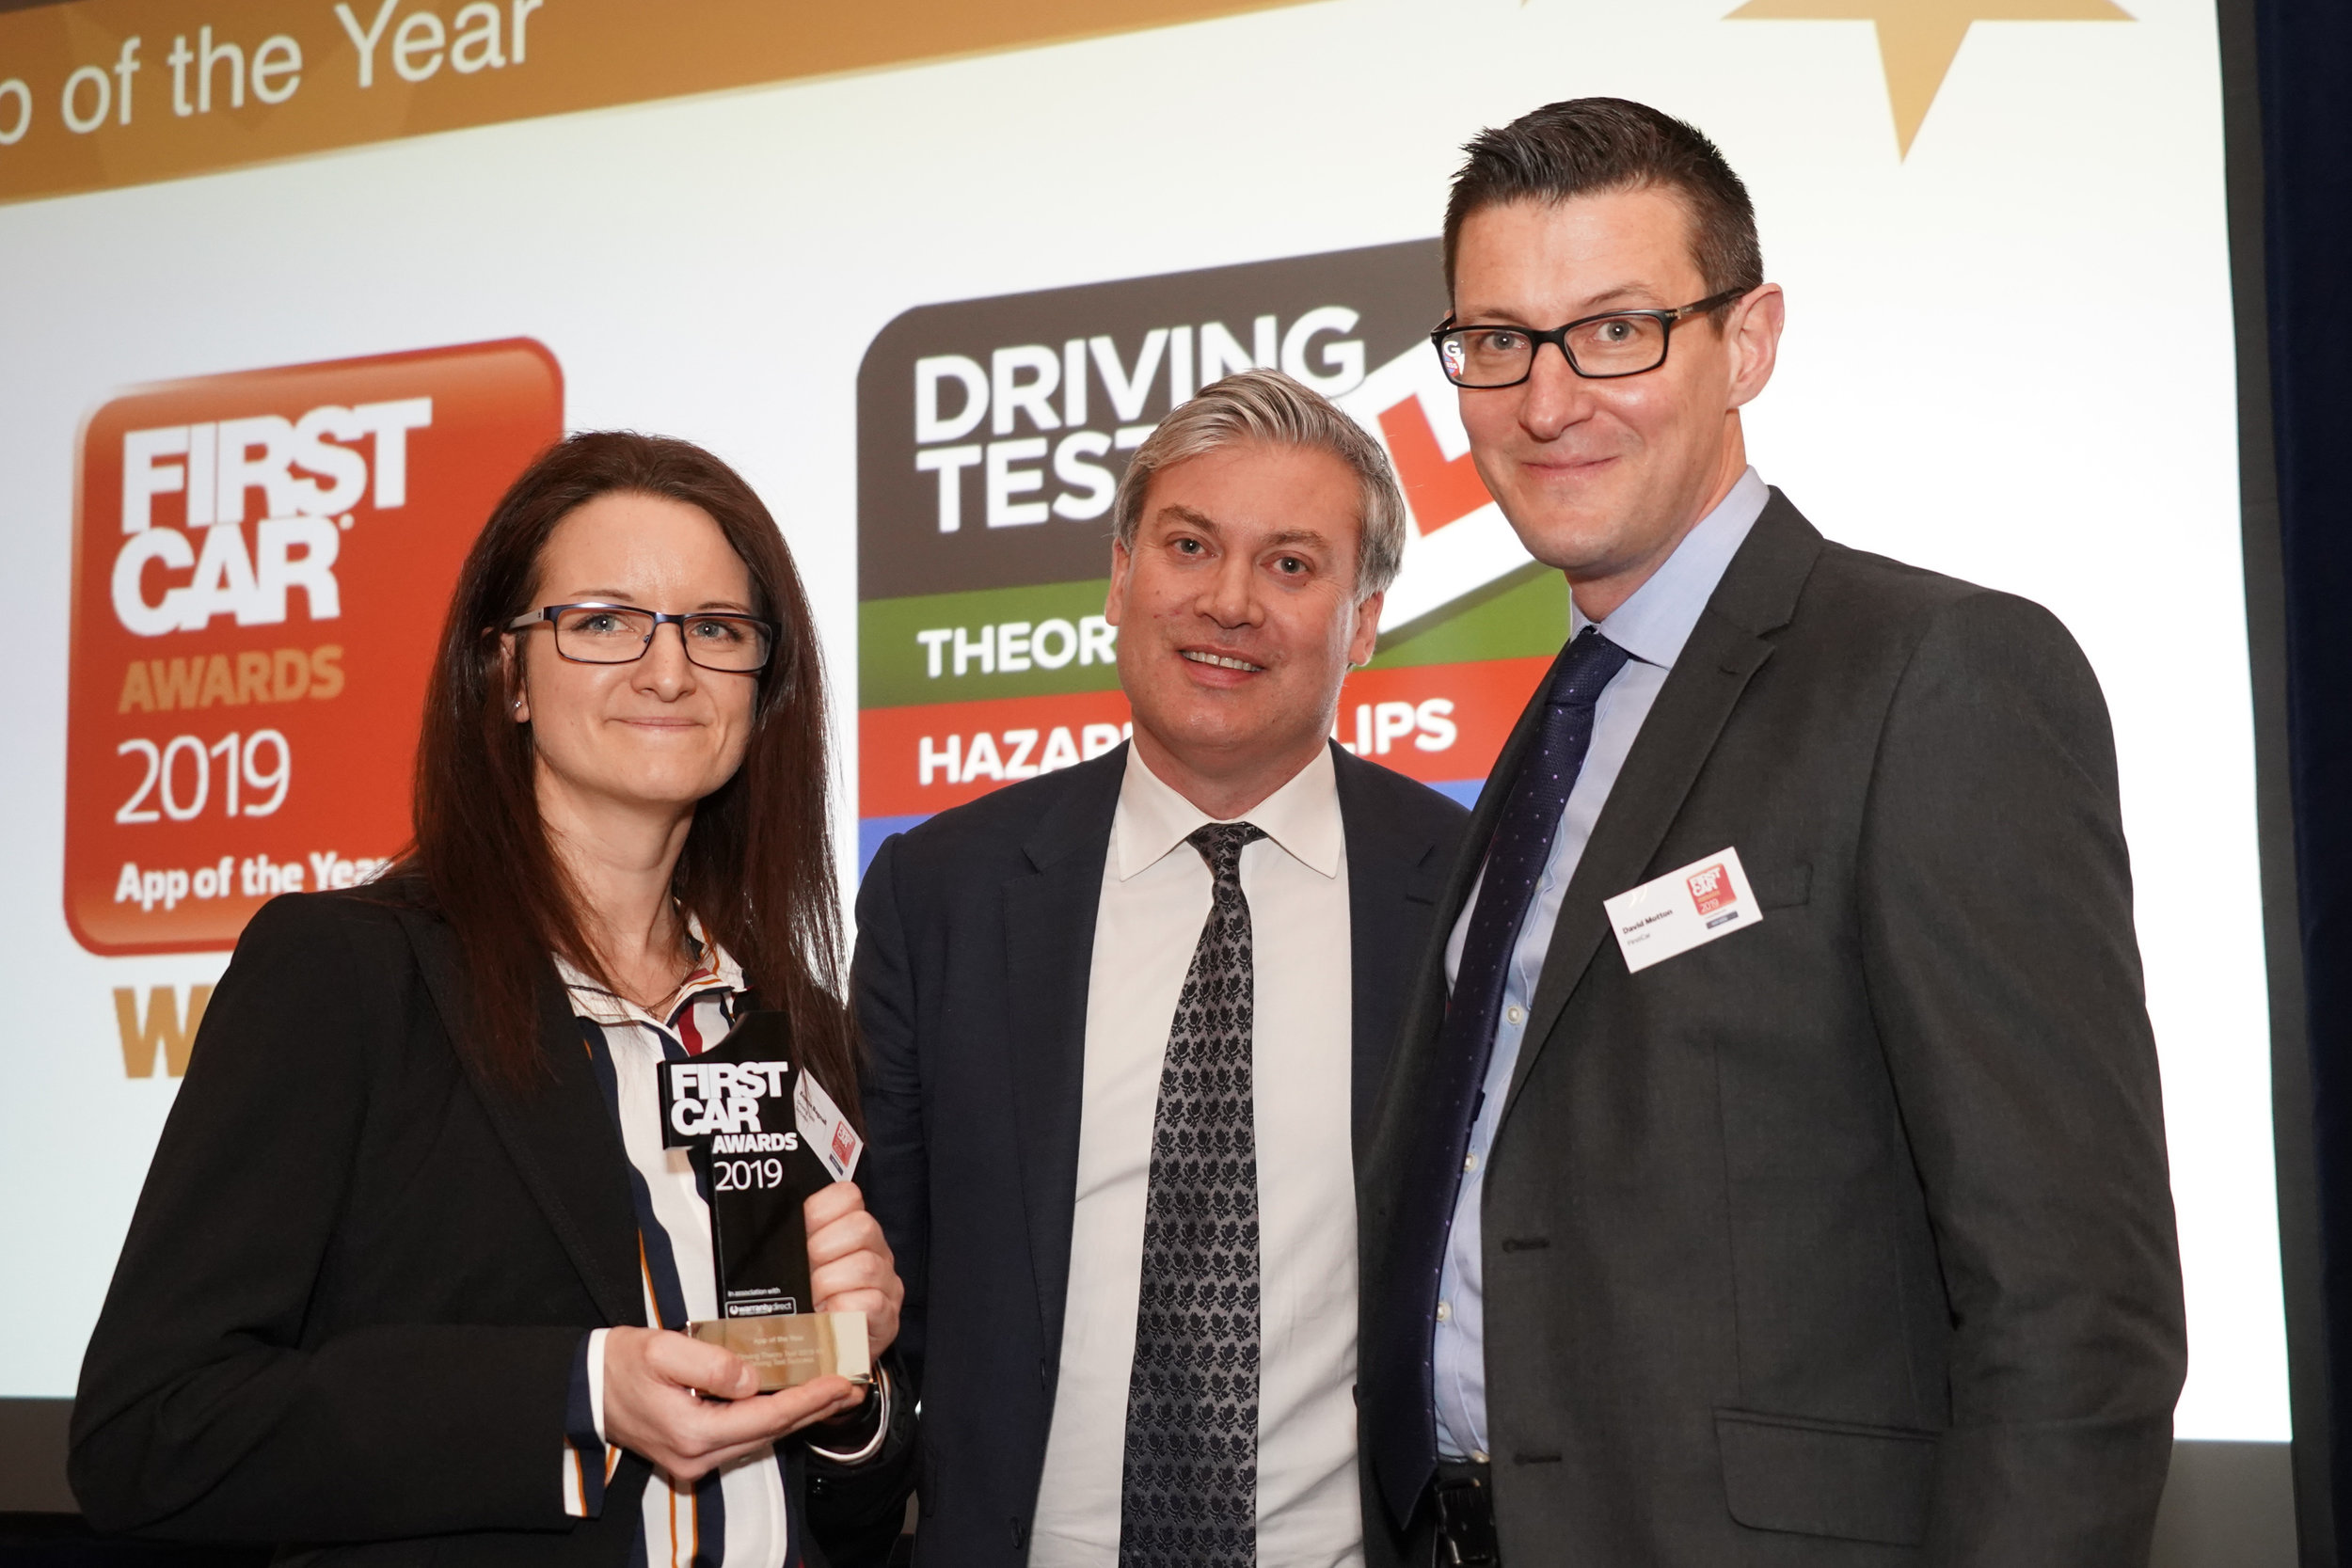 FirstCarAwards2019-203.jpg